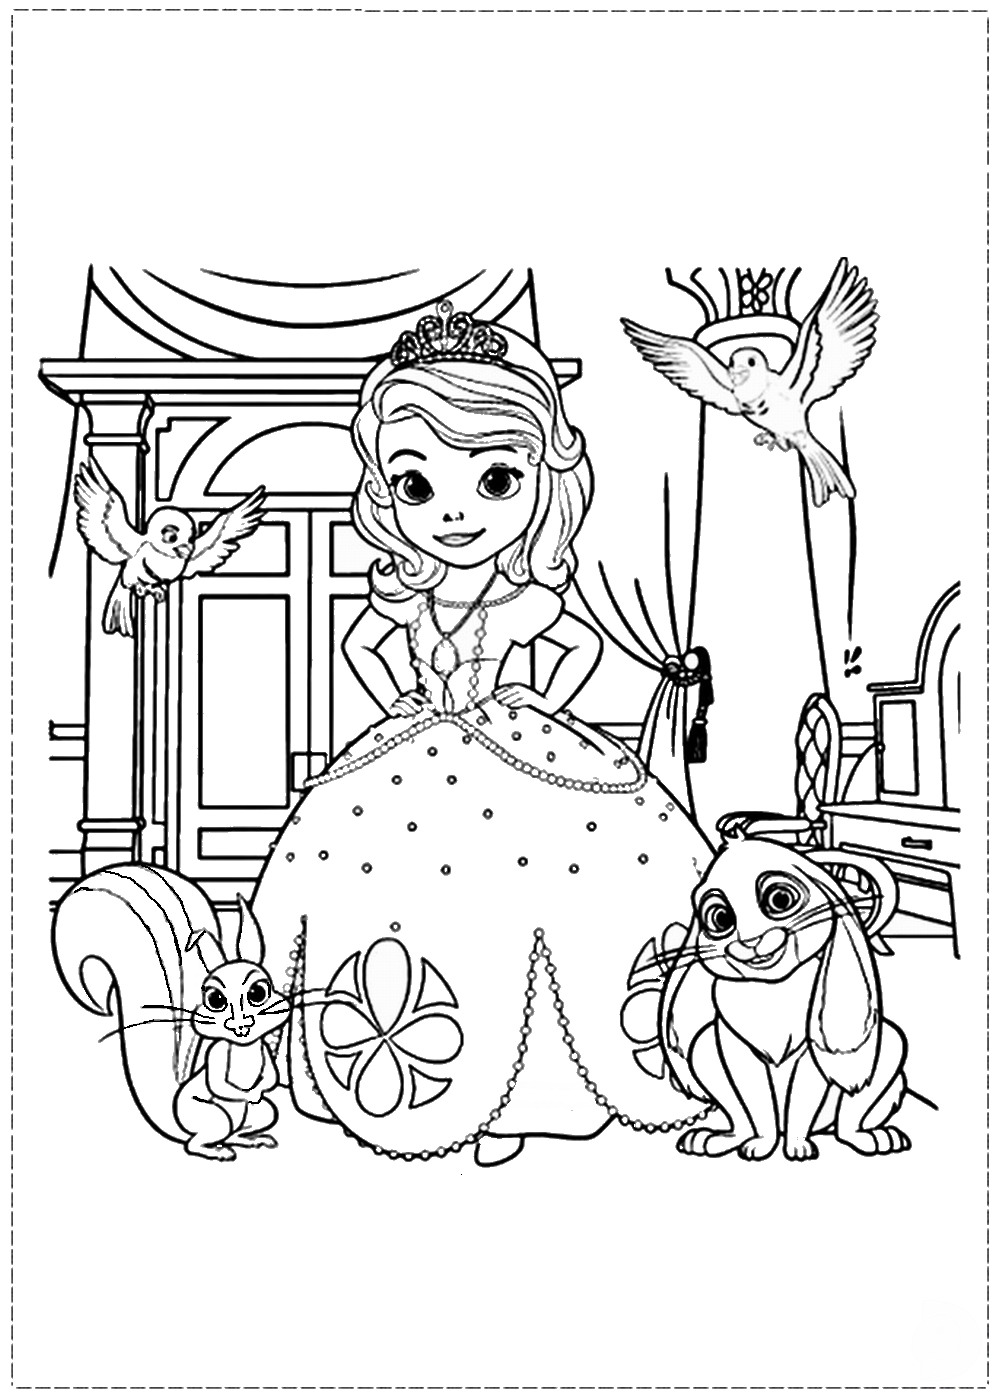 sofia pictures to colour sofia the first coloring pages sofia pictures colour to